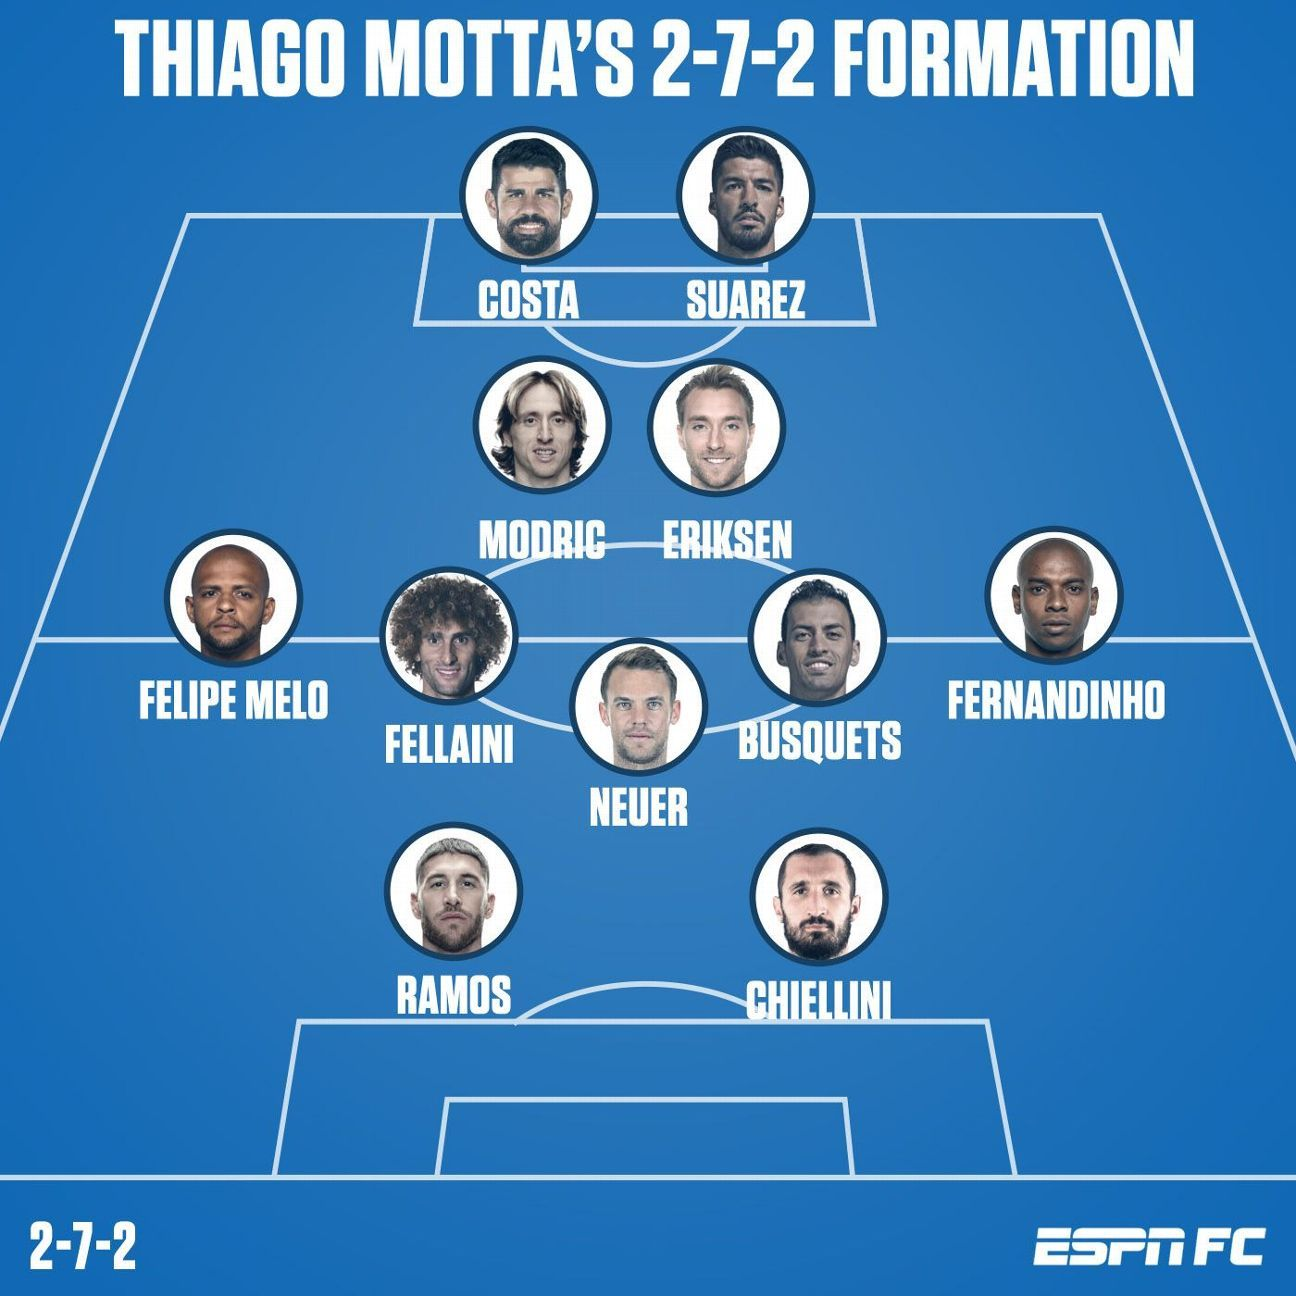 Here's how Thiago Motta's team selection might look if he got the chance to unleash his 2-7-2 formation